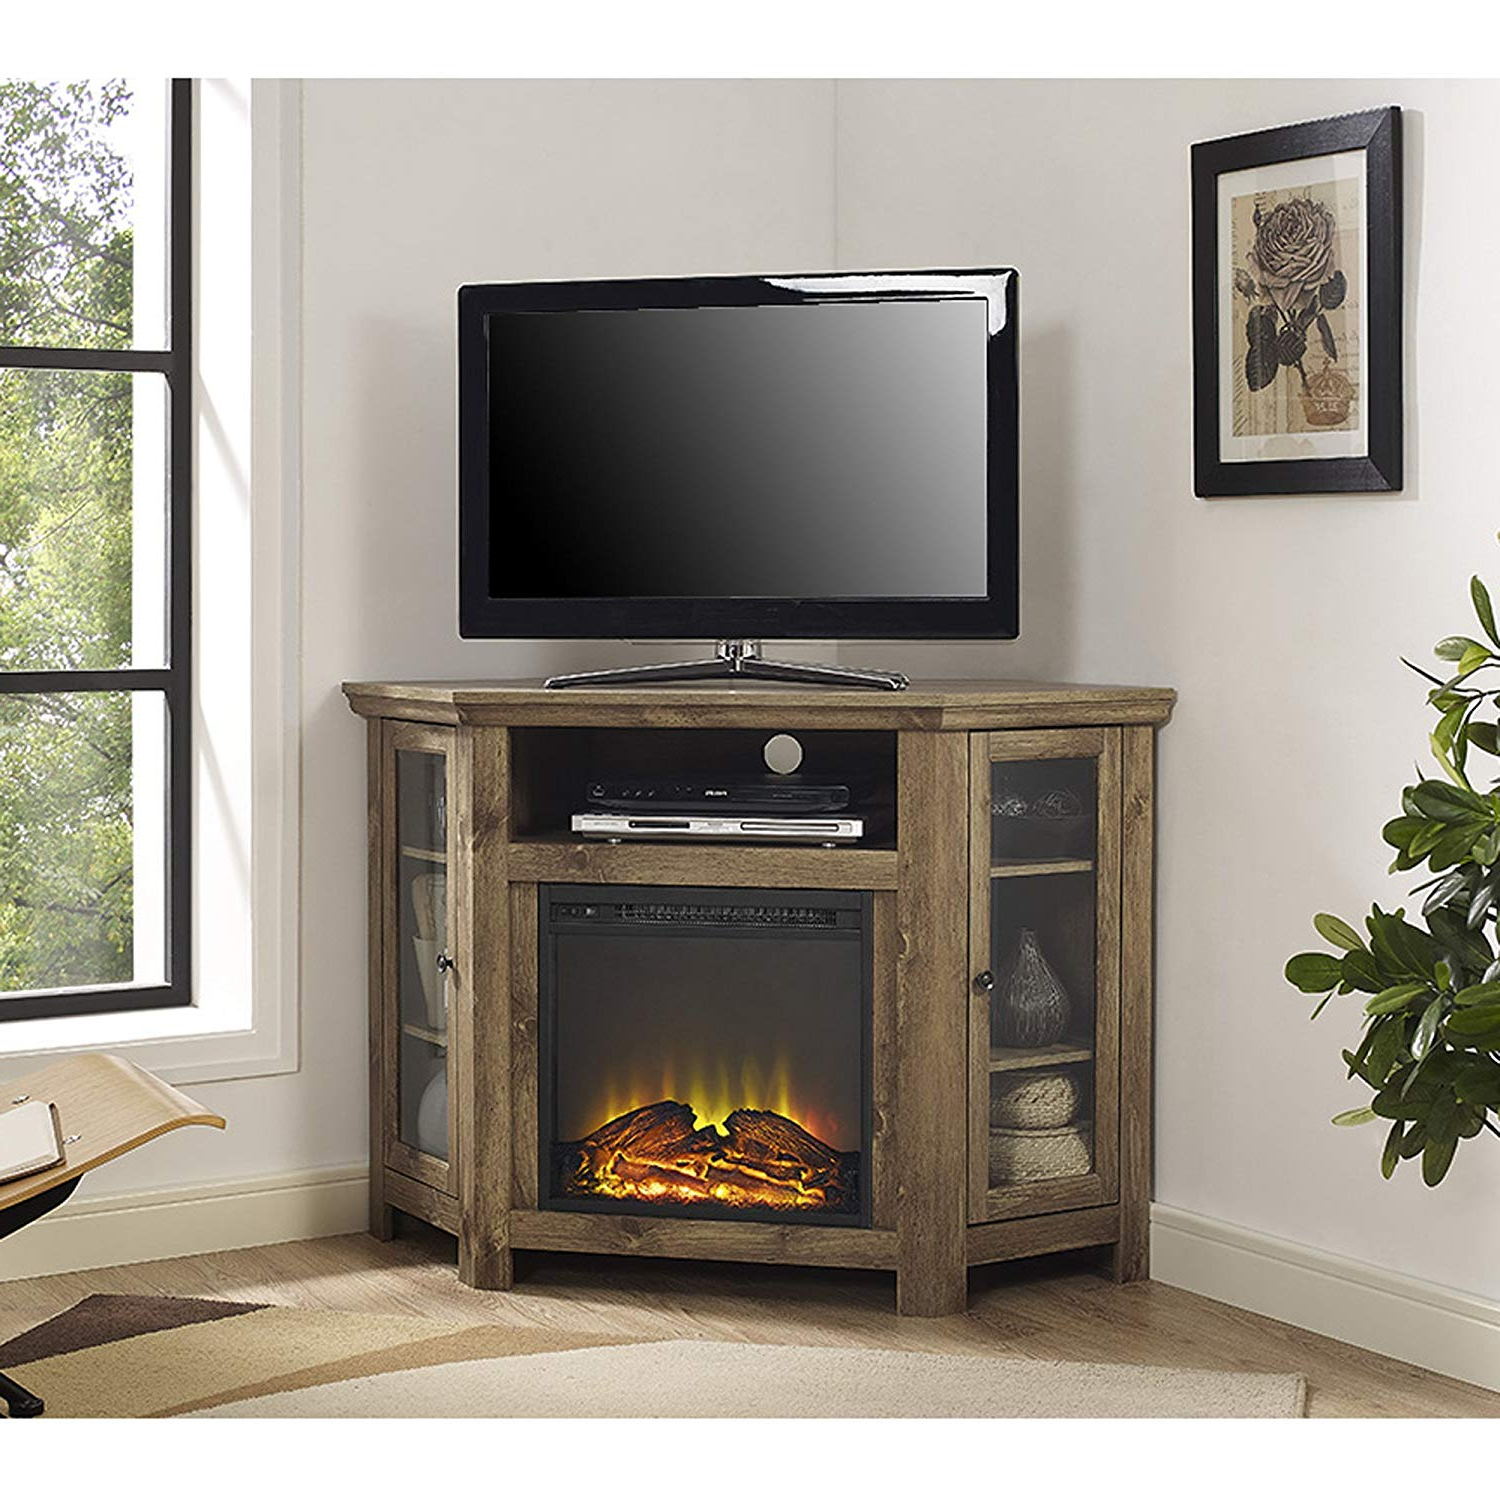 Tv Stands For Small Spaces With Regard To Most Current Small Tv Stand Ikea Space Saving Mount Target Modern Unit Design (View 16 of 20)